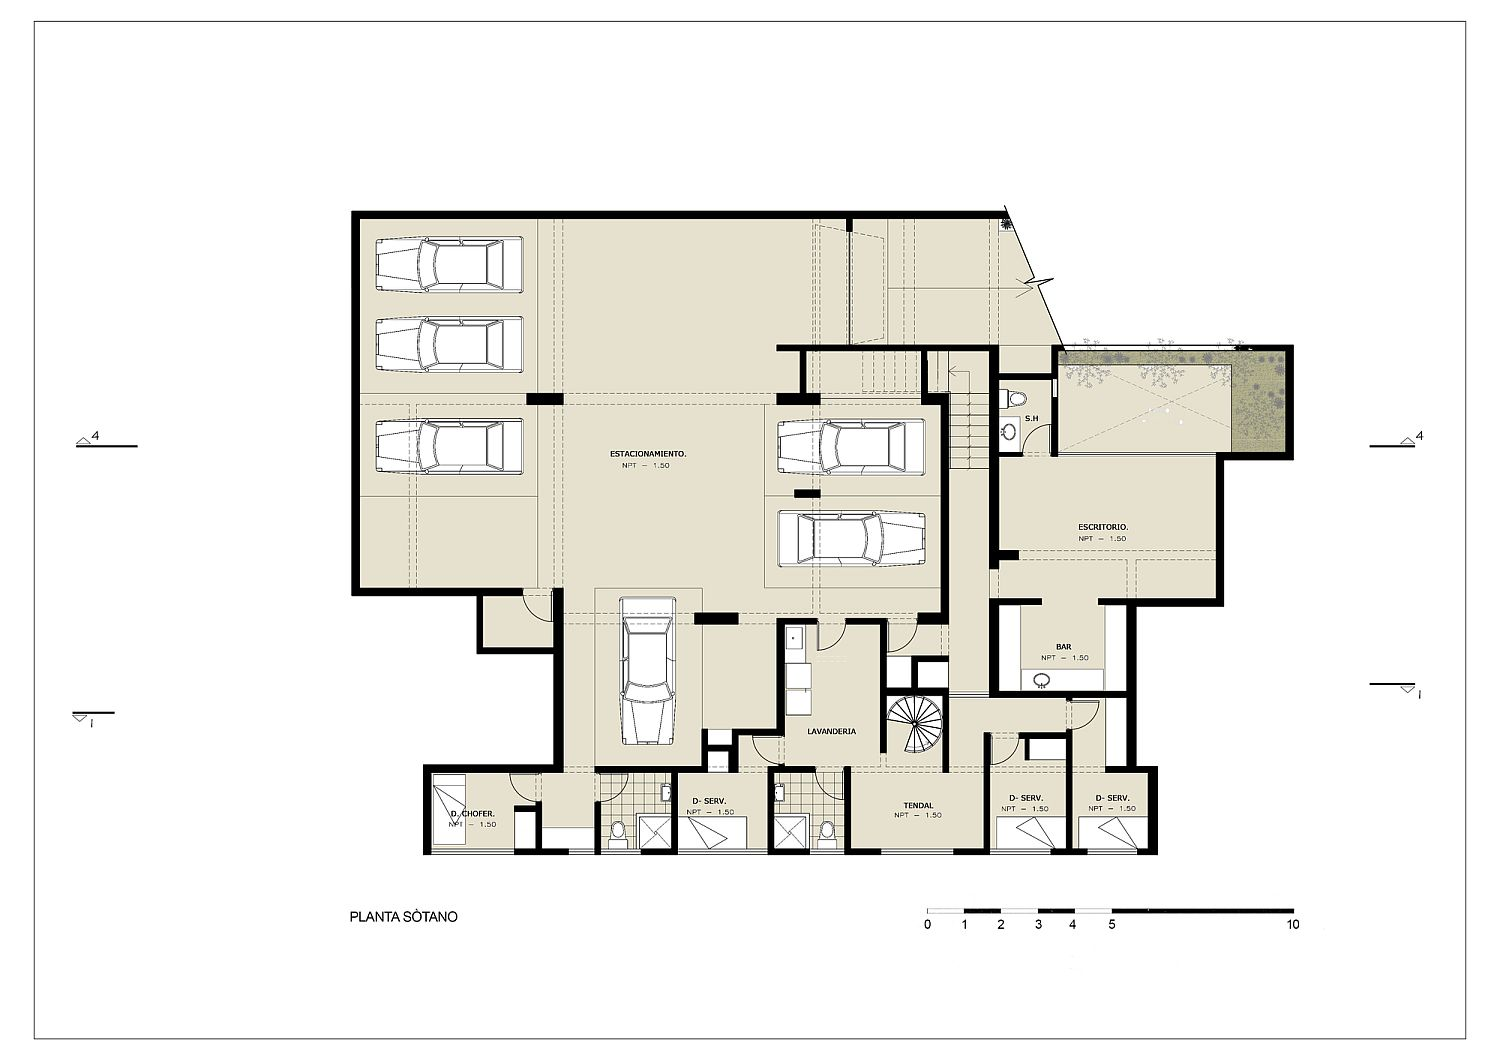 Basement floor plan of House M with ample parking space